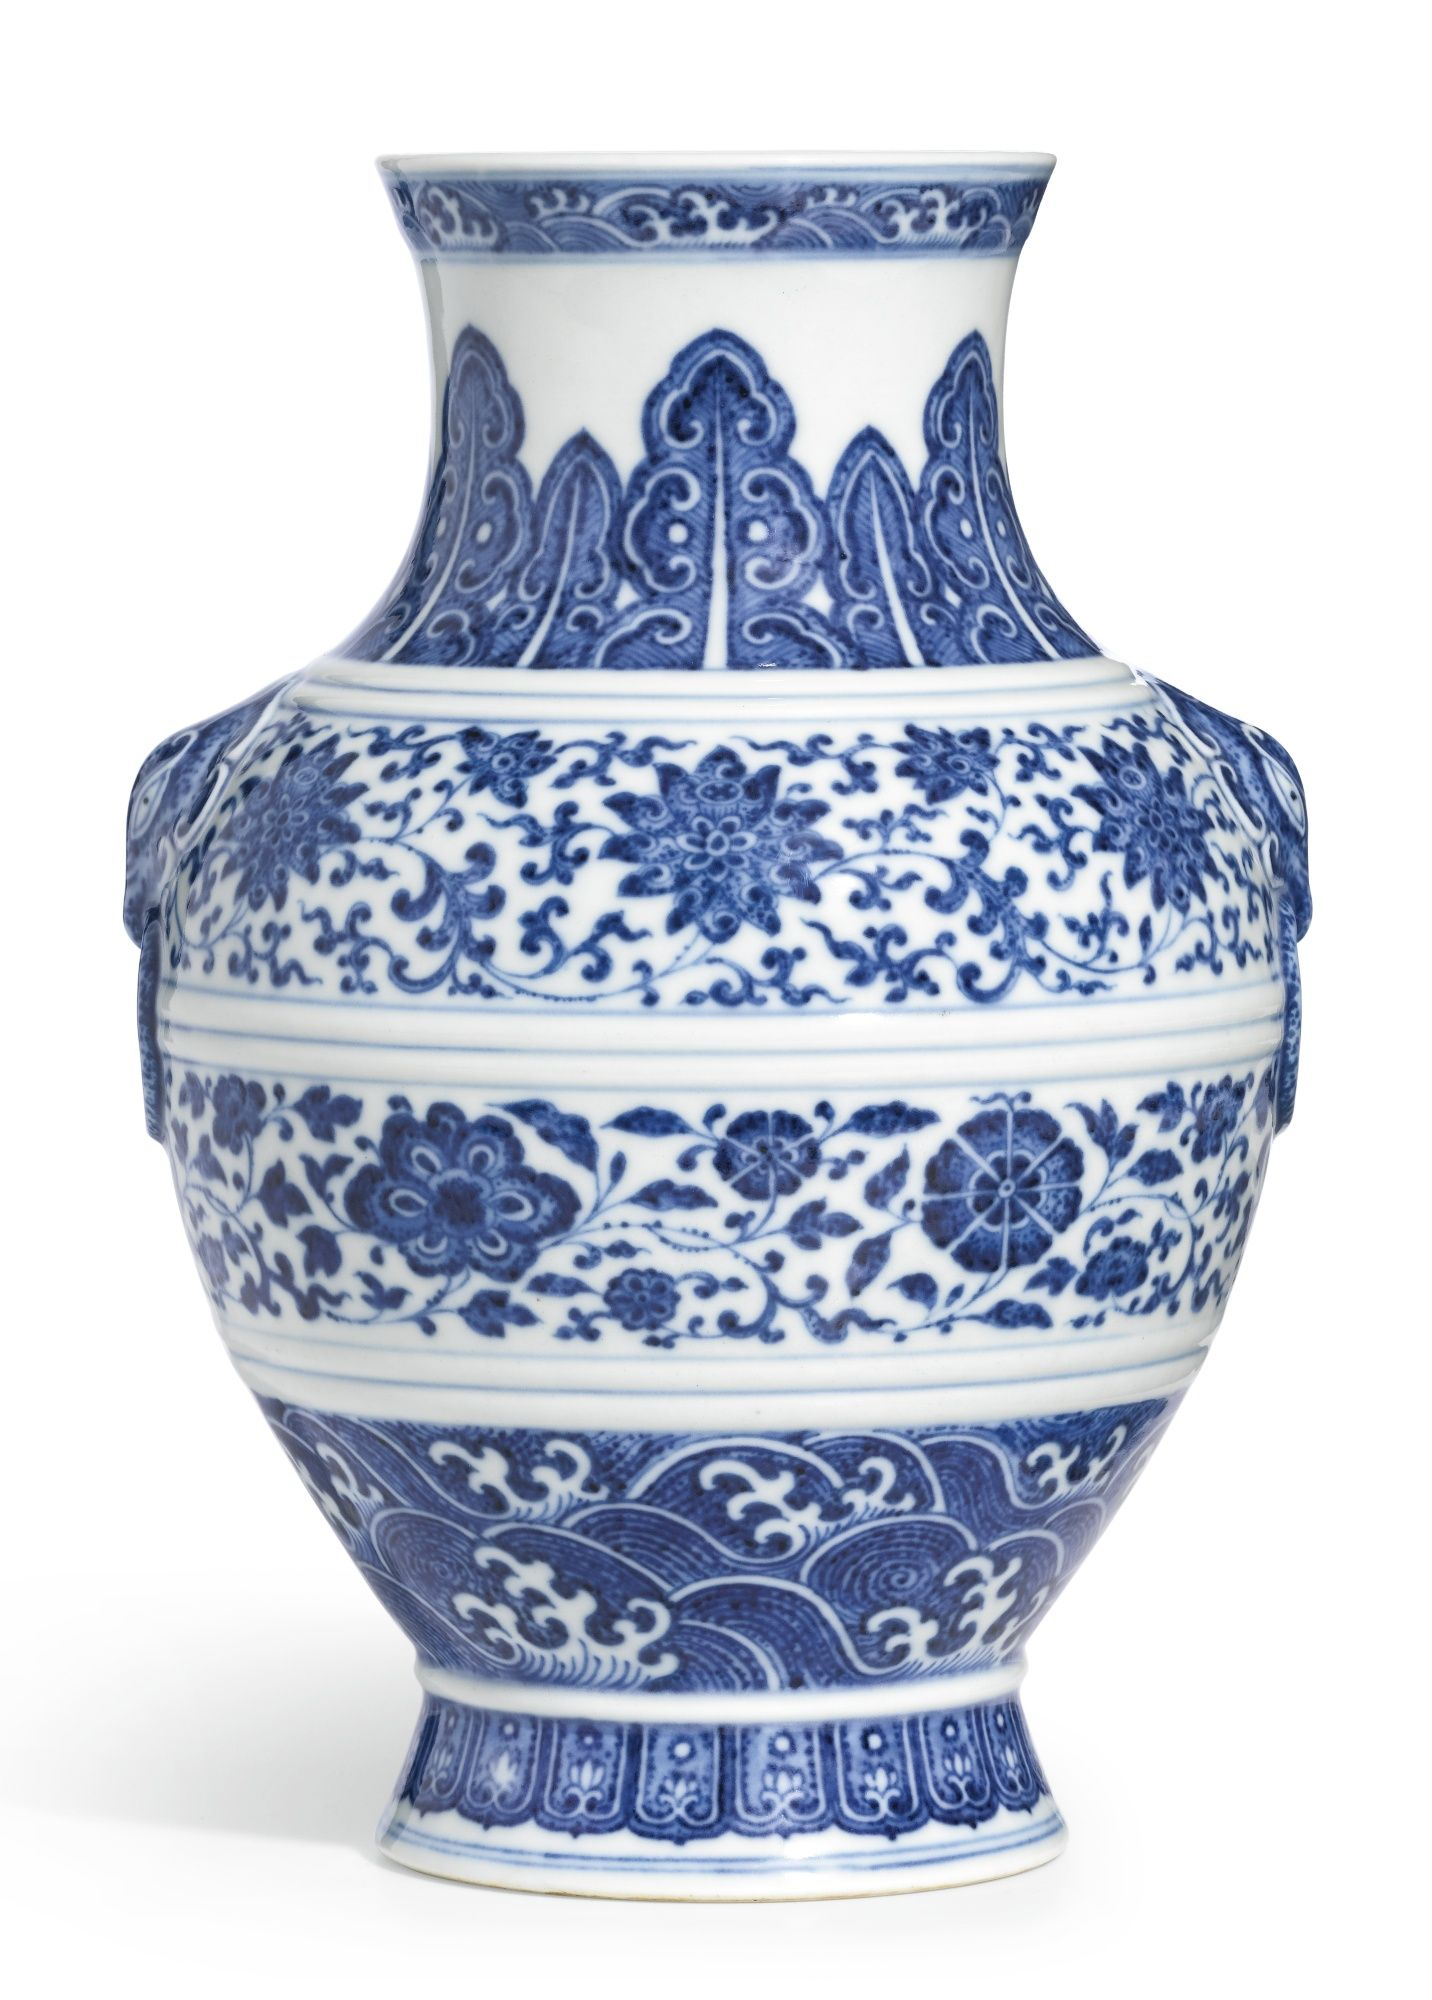 A BLUE AND WHITE VASE, HU JIAQING SEAL MARK AND PERIOD